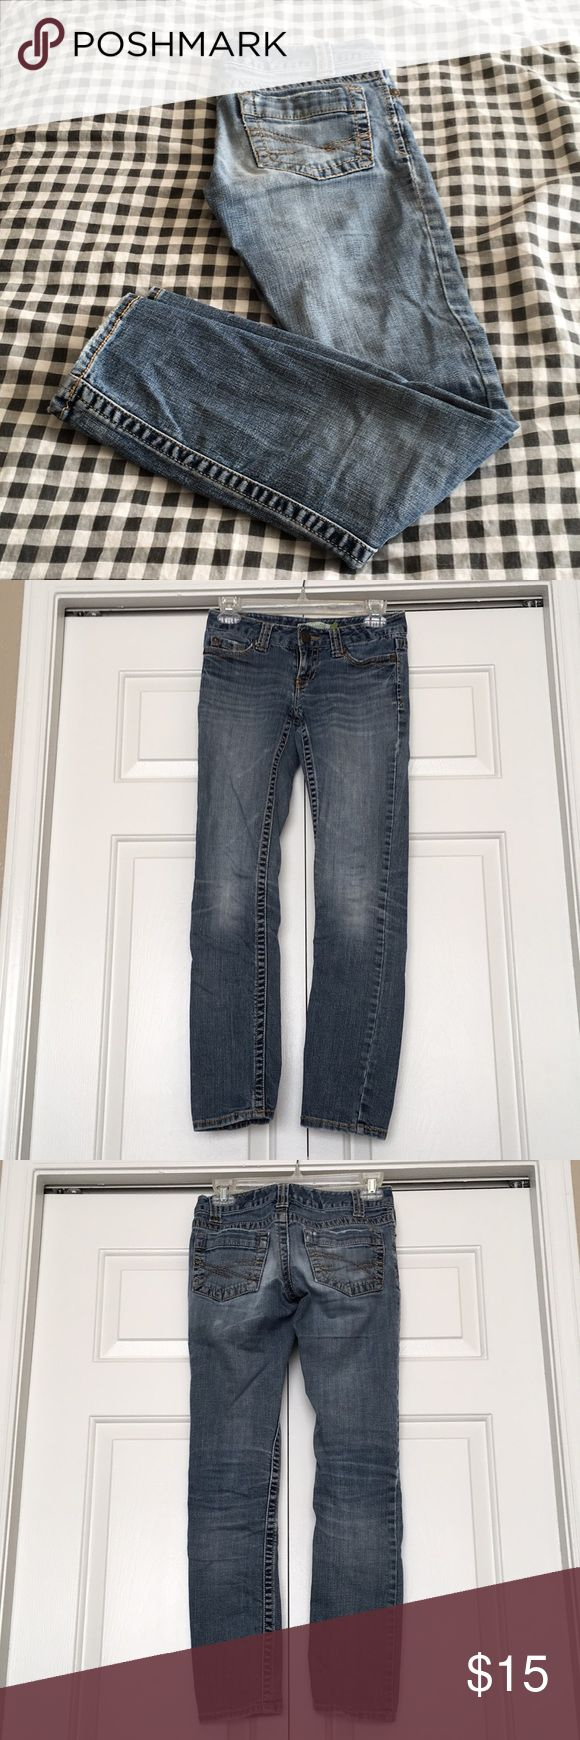 Aeropostale Skinny Jeans Aeropostale Denim Skinny Jeans Very little distress Small white mark on back (shown in fourth picture) Aeropostale Jeans Skinny